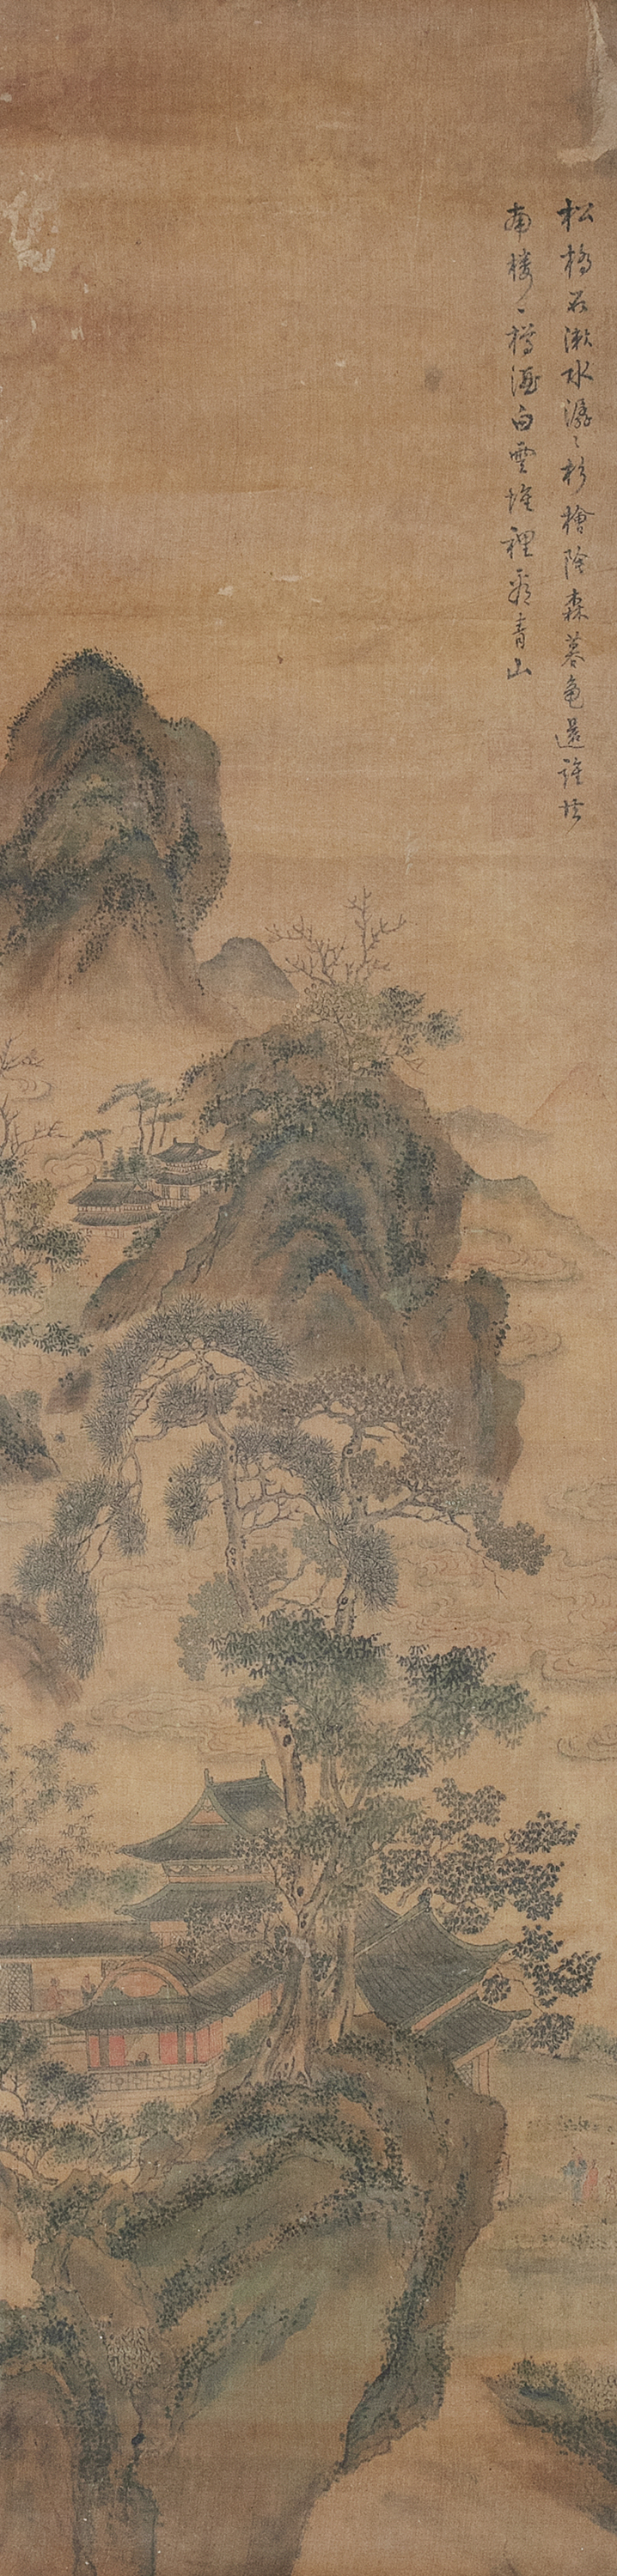 CHINESE SCHOOL, AFTER PURU 溥儒 ALSO KNOWN AS PU XINYU 溥心畬 (1896-1963) Landscape with a pavilion and